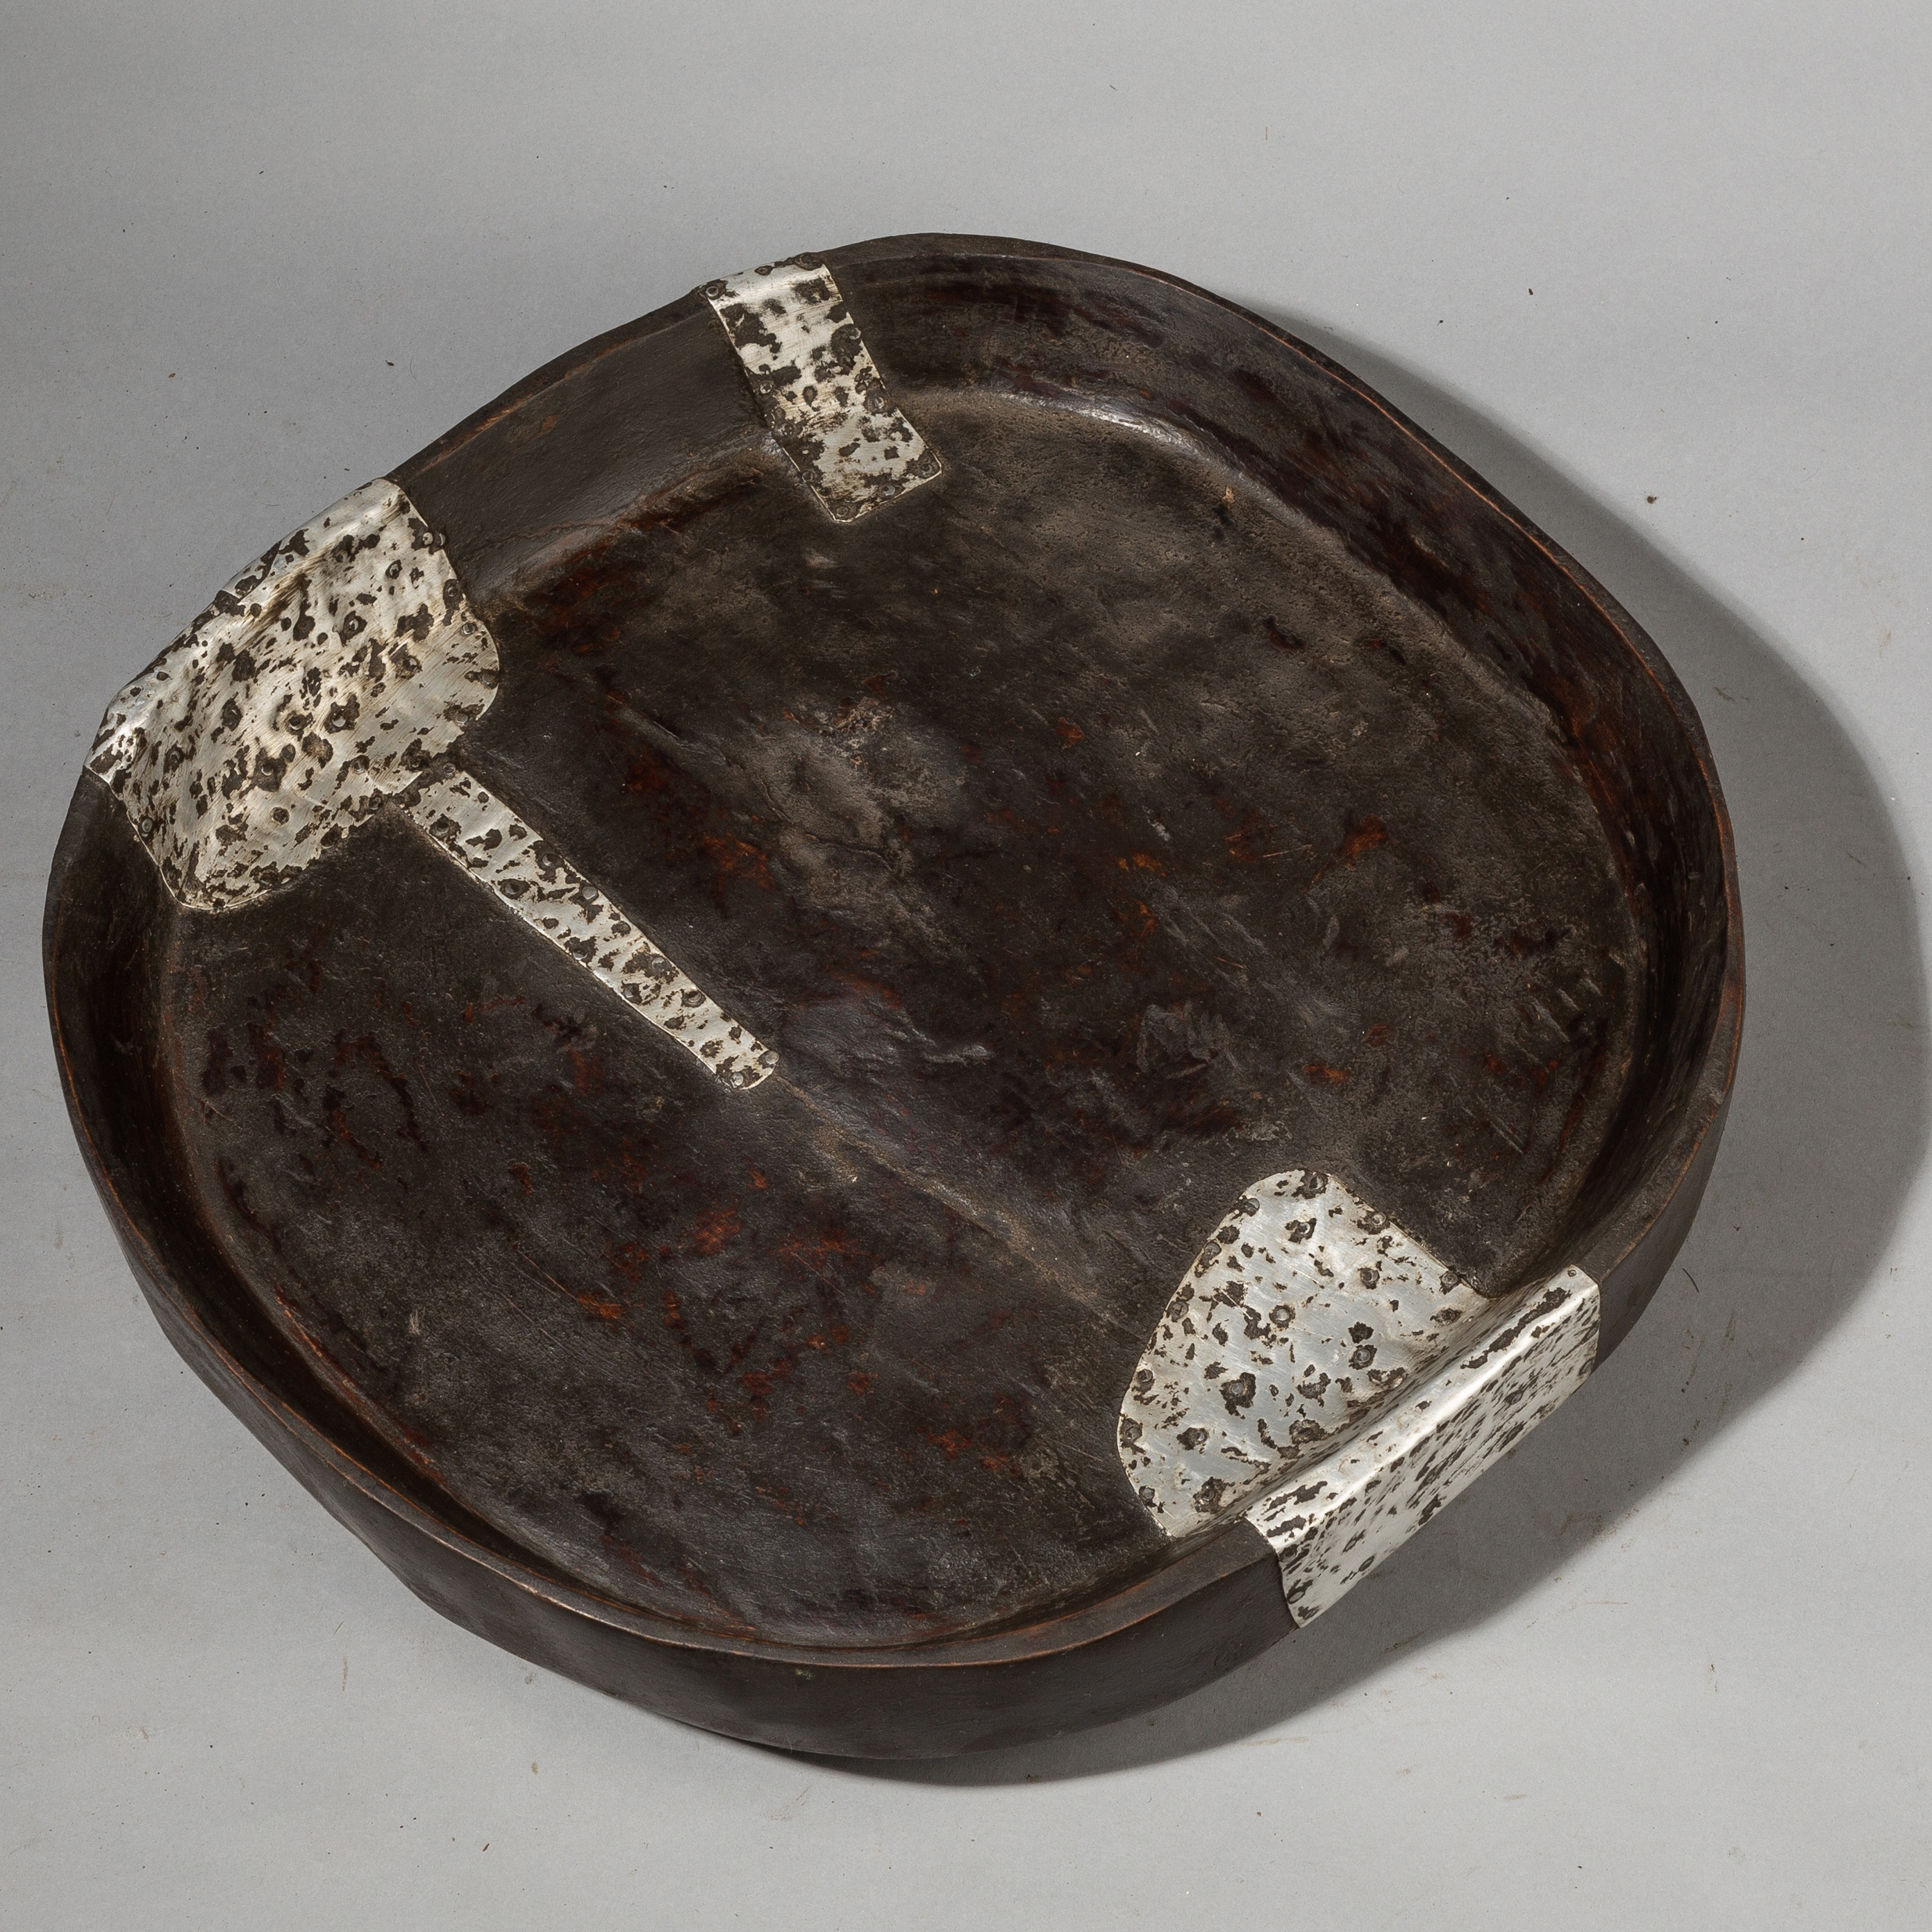 A CHARACTERFUL WOODEN TRAY WITH METAL REPAIRS, FIPE TRIBE TANZANIA E AFRICA ( No 3978 )